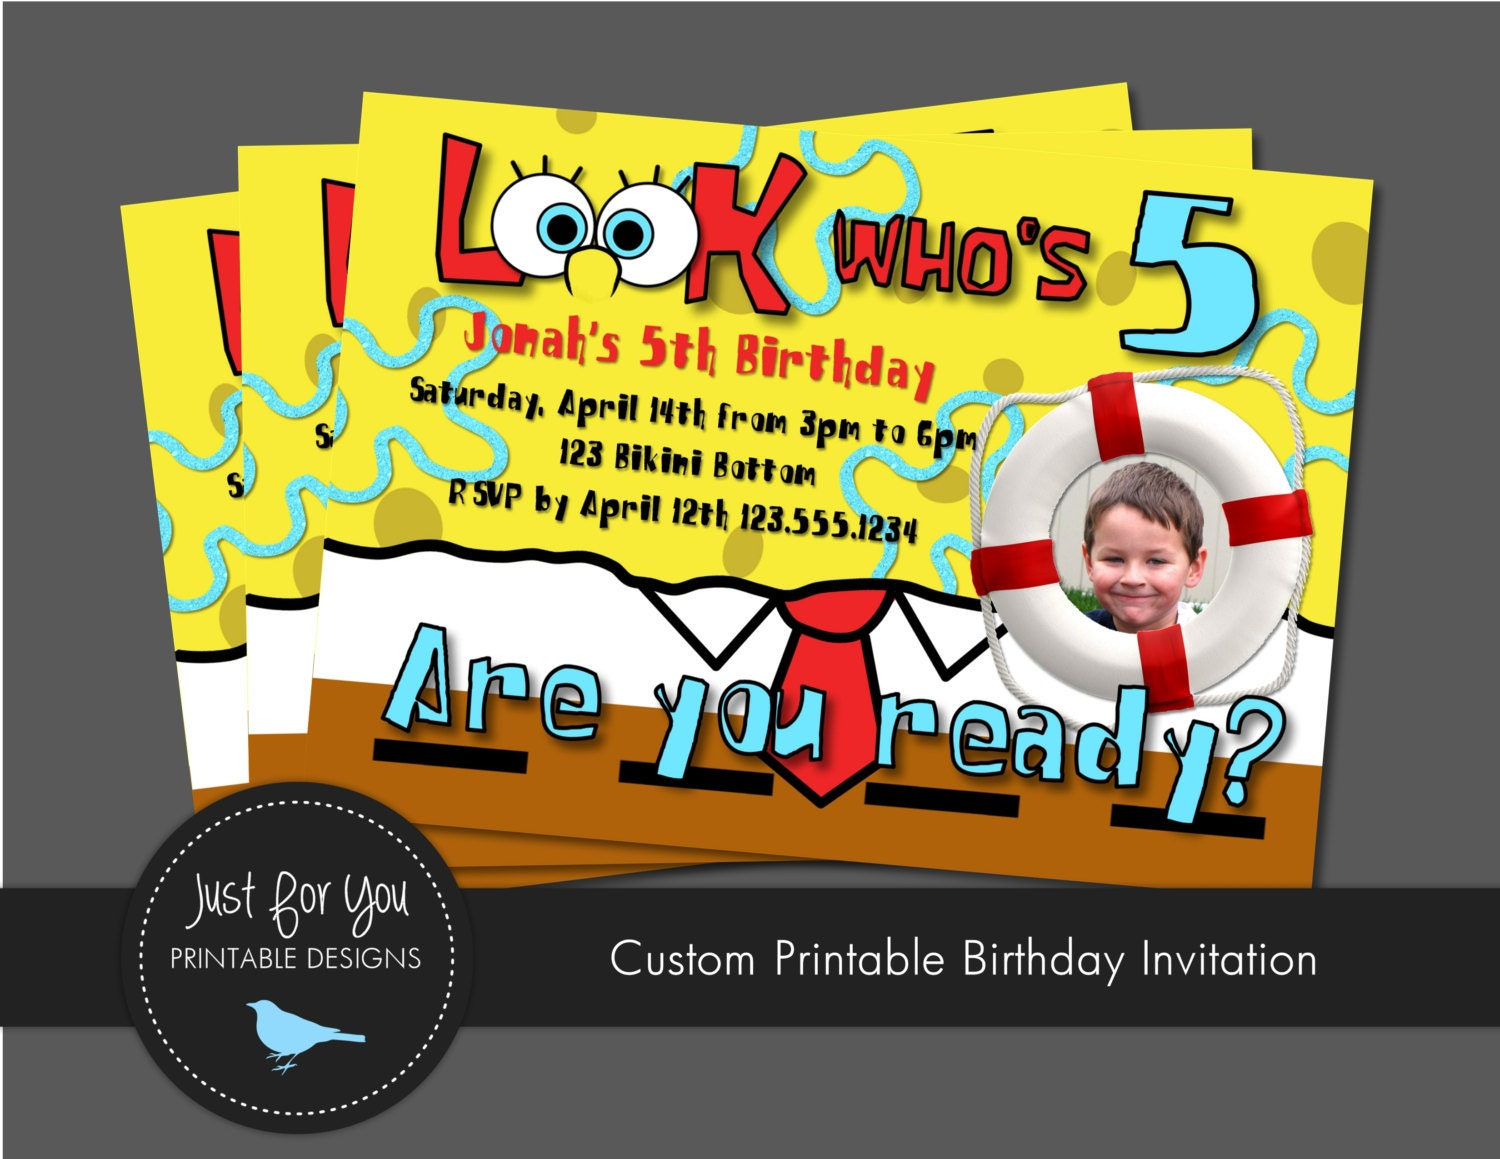 spongebob squarepants inspired birthday invitation you print, party invitations